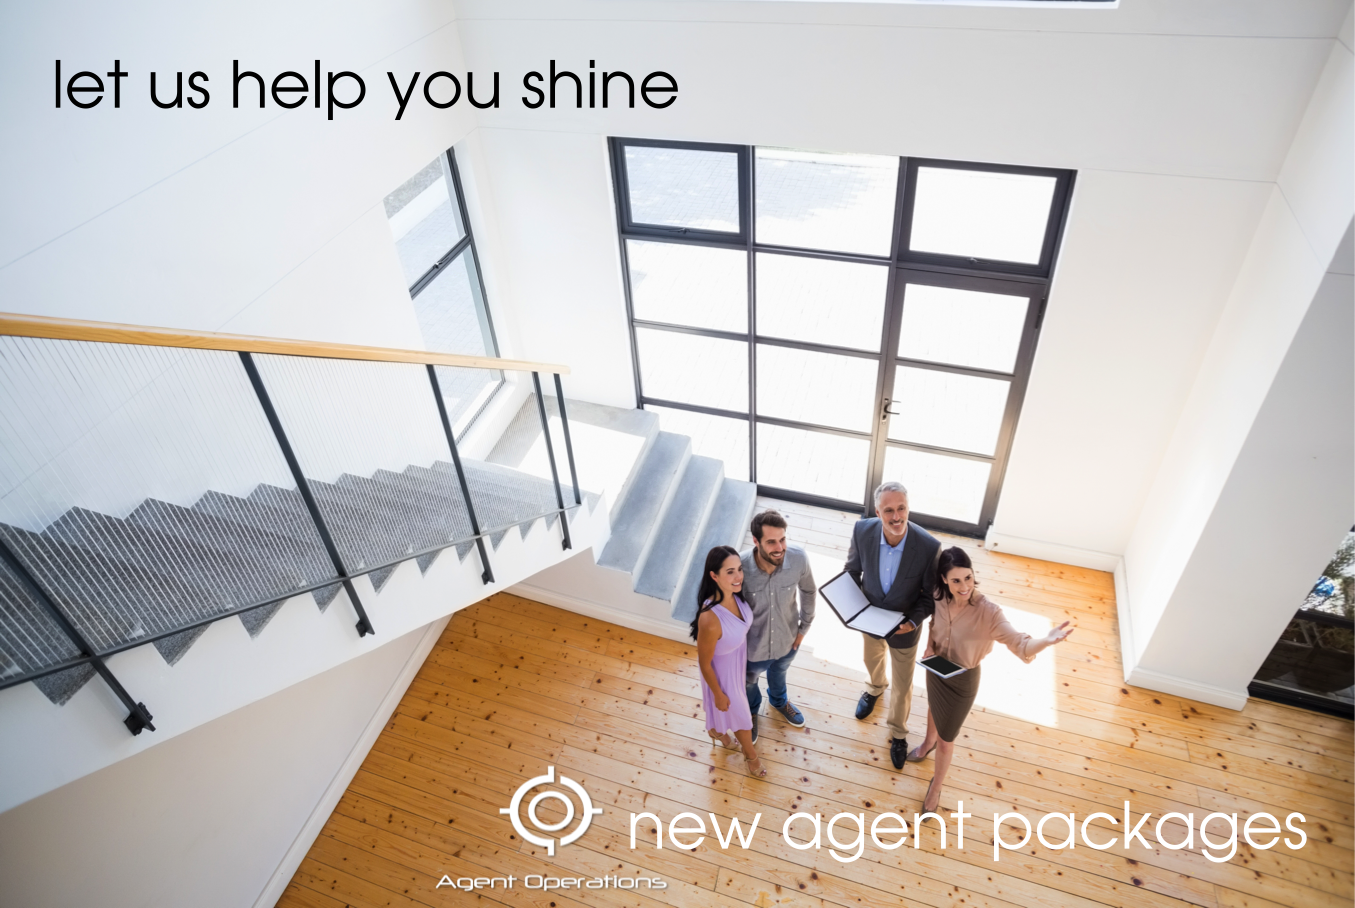 New Agent Package Product Image - Agent Operations Real Estate Marketing Firm REALTOR Marketing Ideas Branding